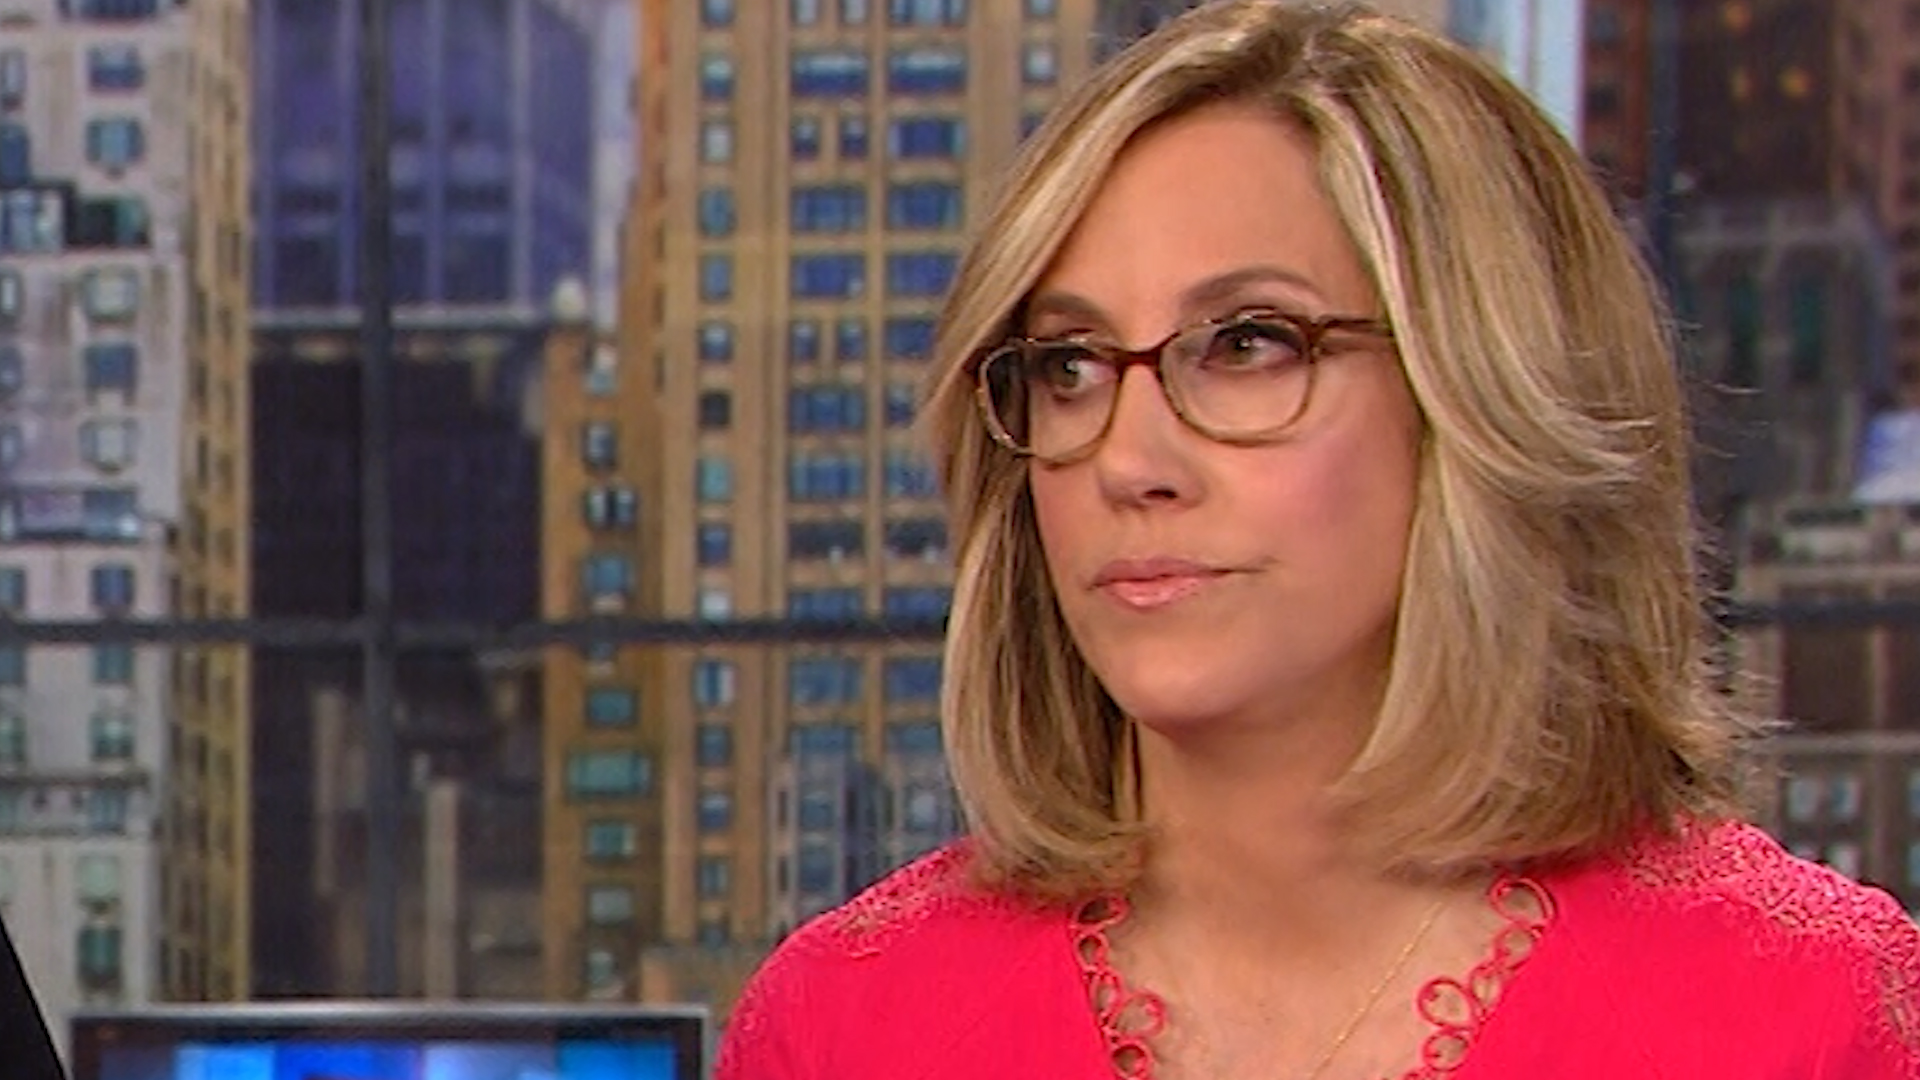 CNN's Camerota calls out her former employer Fox News - CNN Video